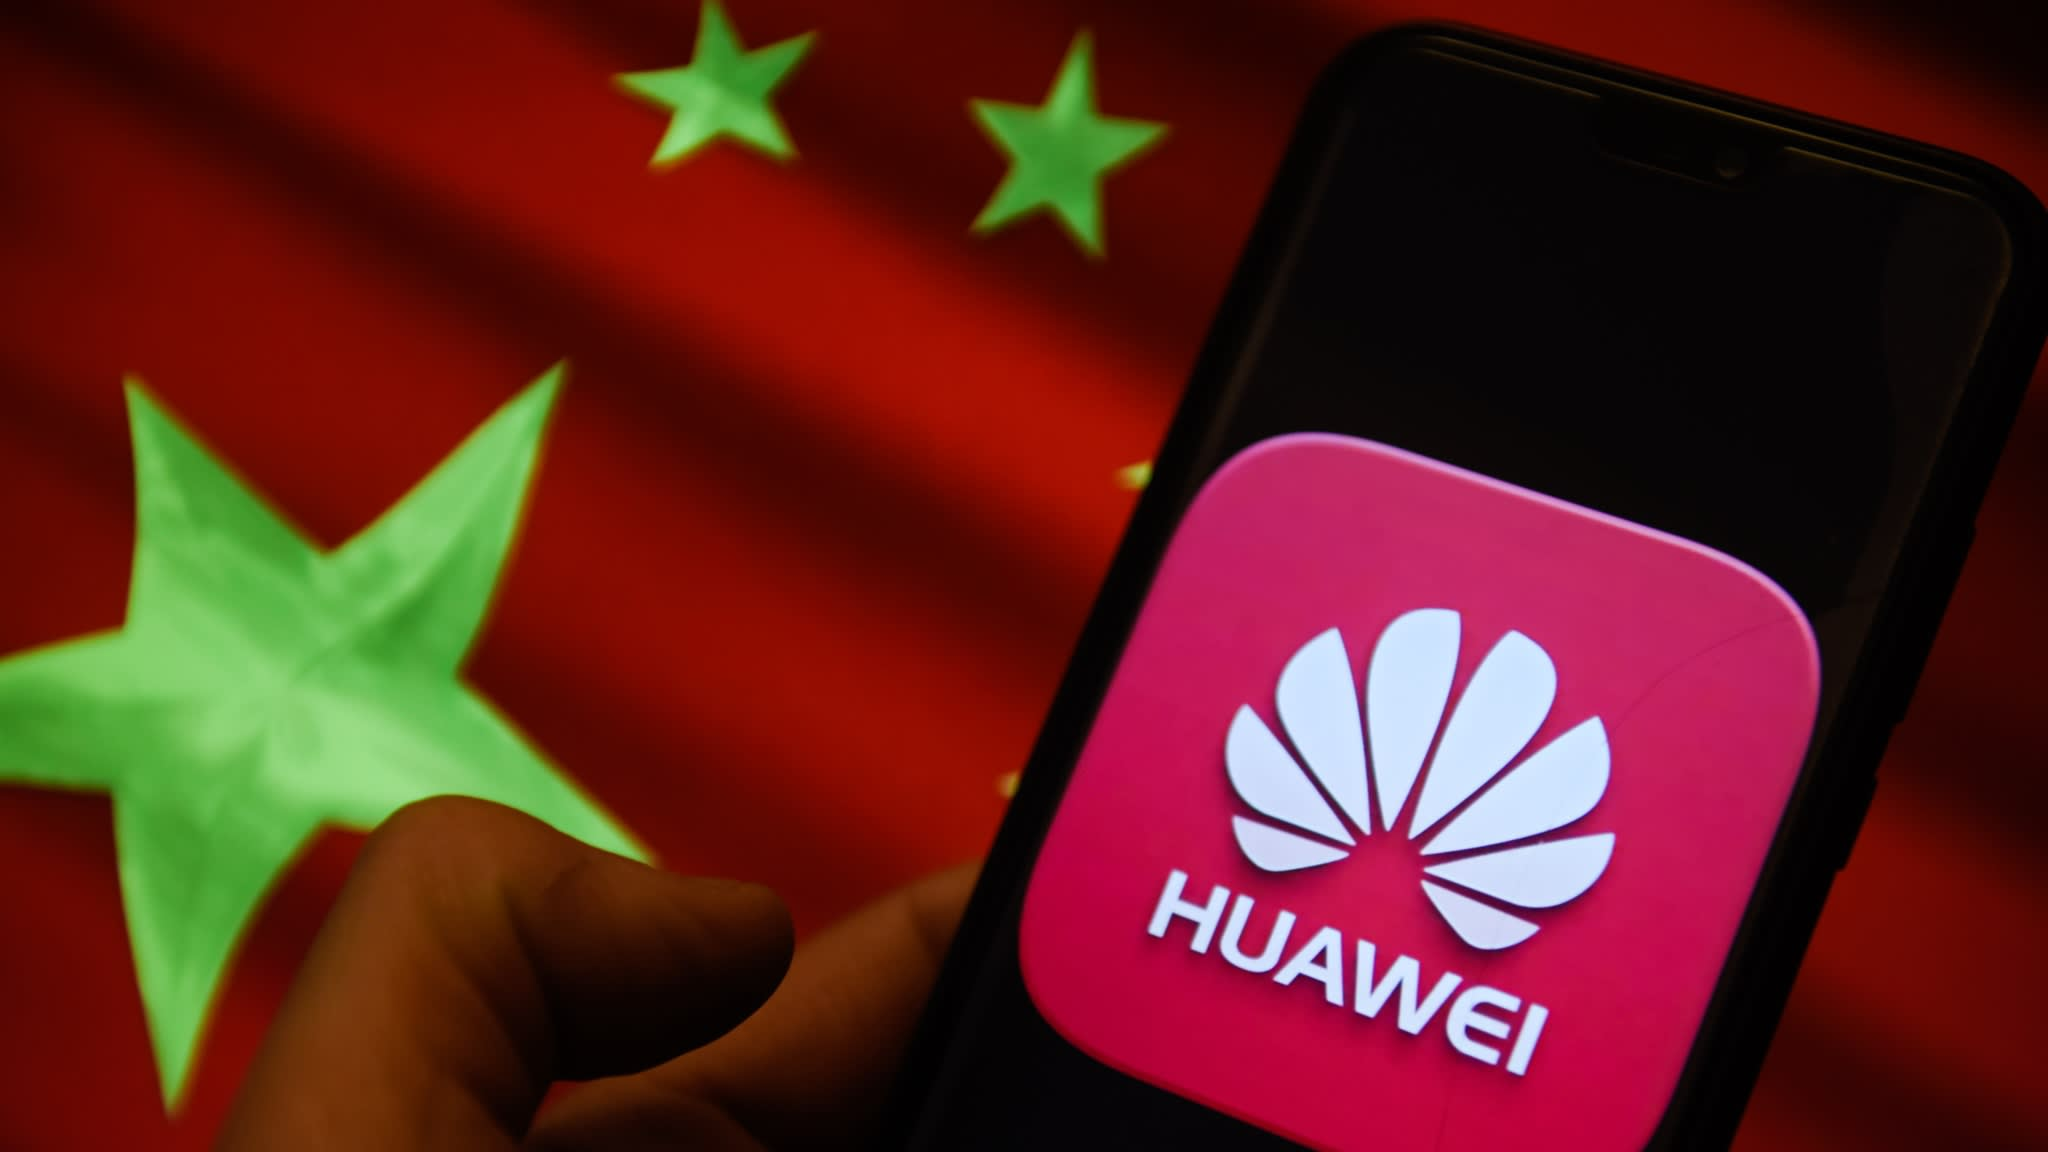 Huawei Offers Full Refund to Users Who Can't Access Google or Facebook